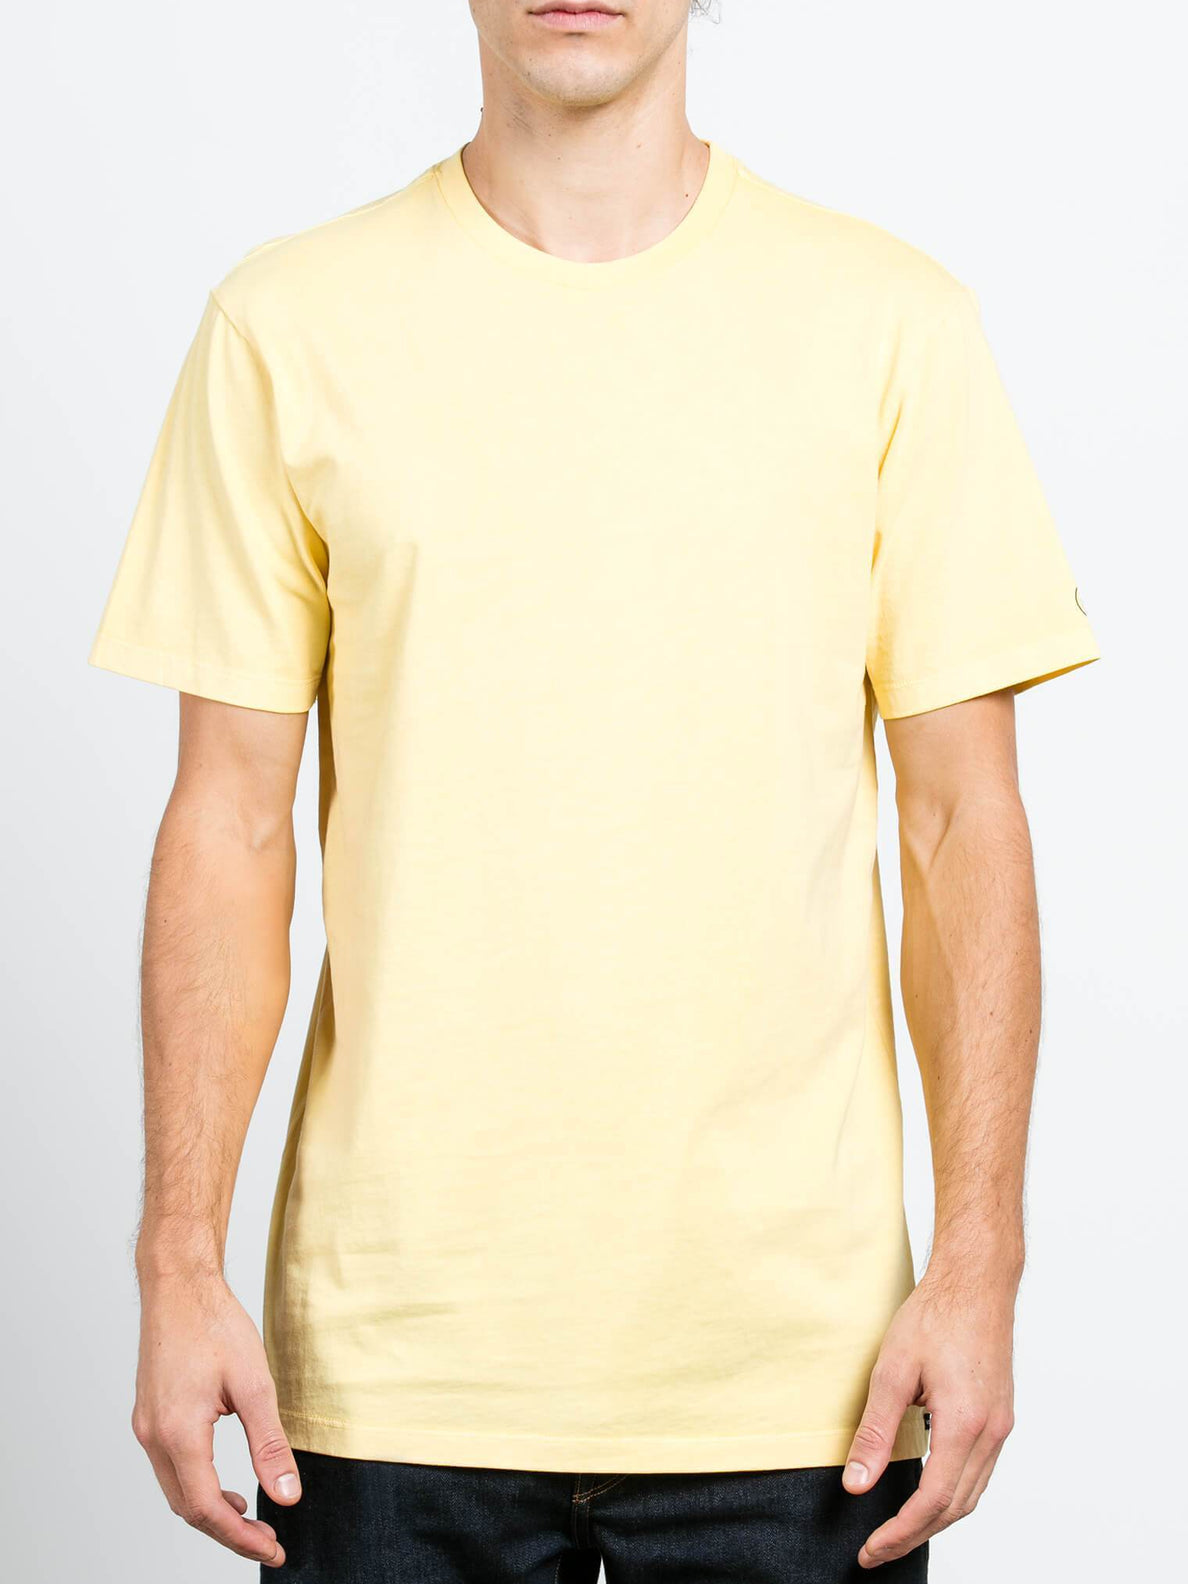 Pale Wash Solid Short Sleeve Tee - Light Yellow